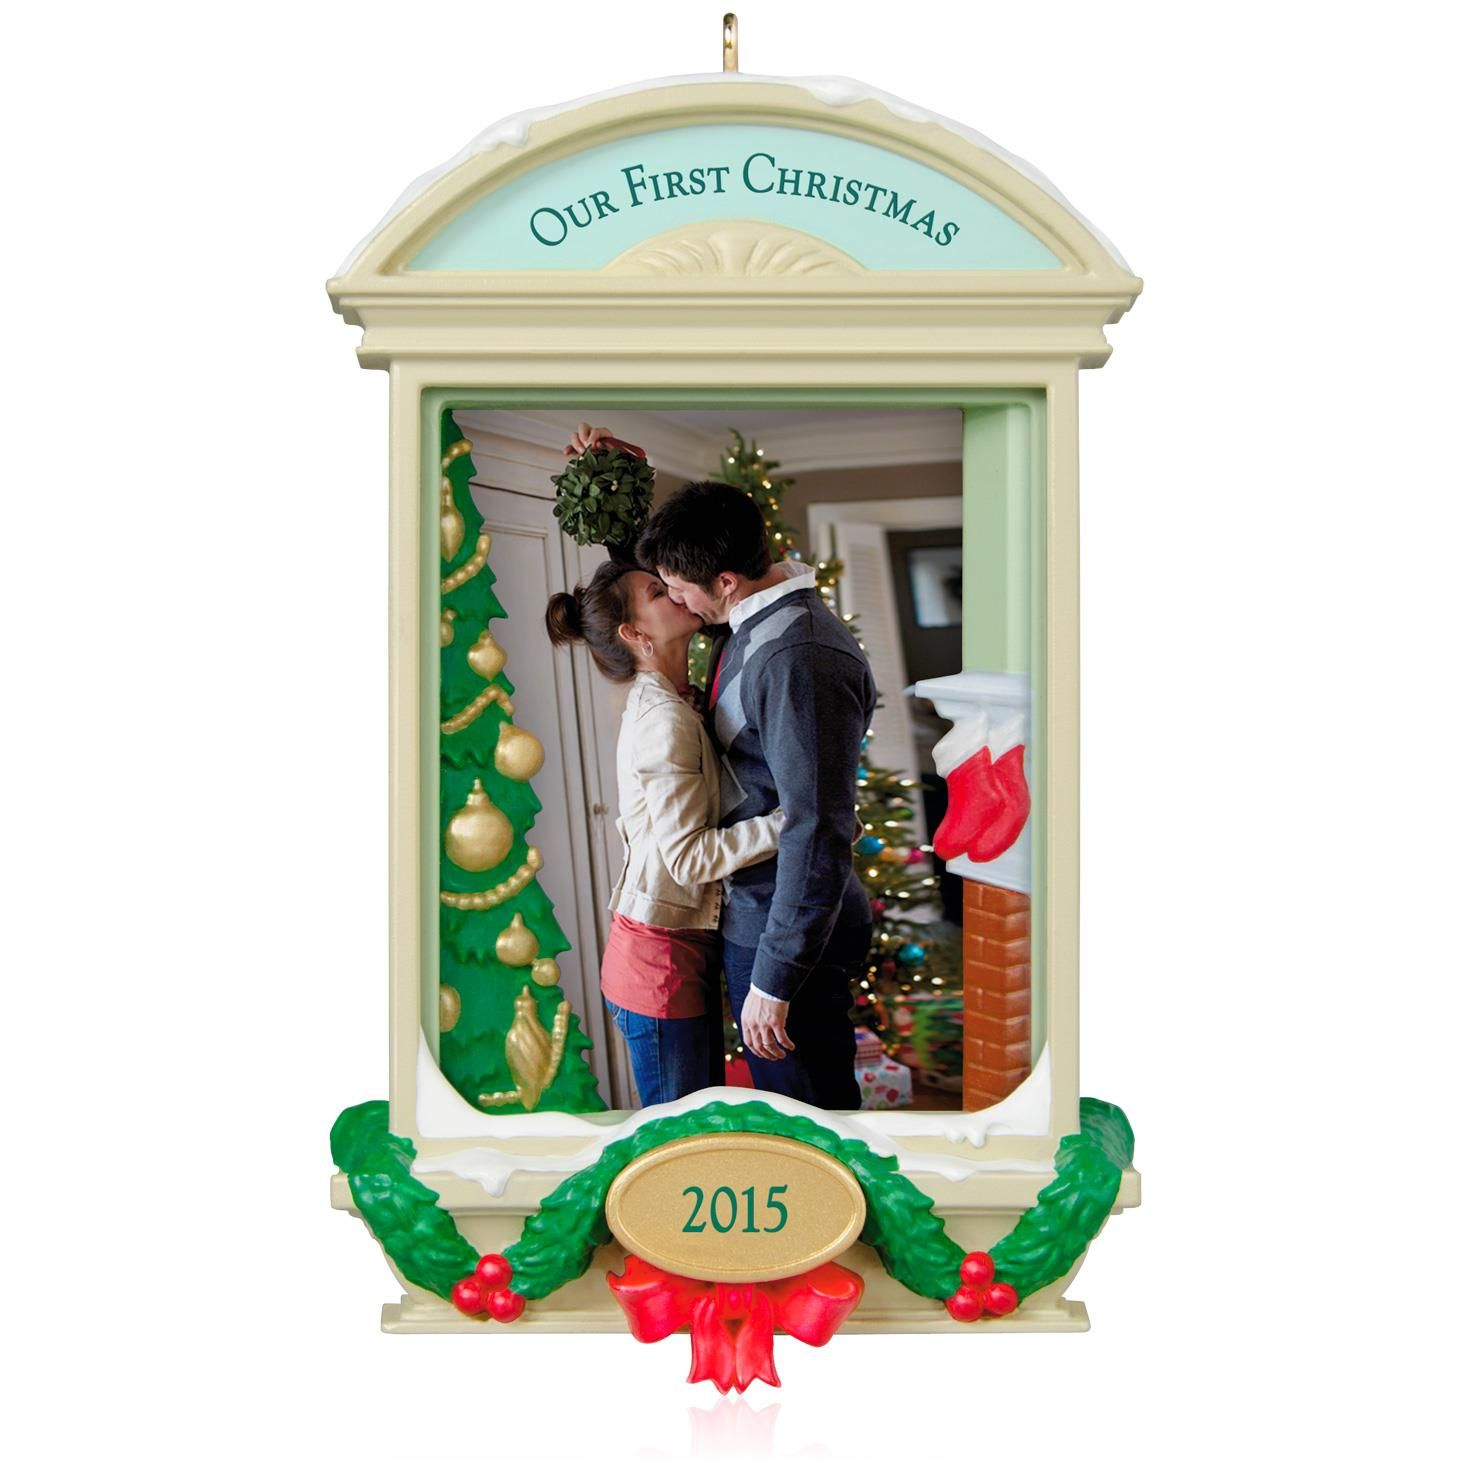 2015 Our First Christmas Together Hallmark Keepsake Ornament ...